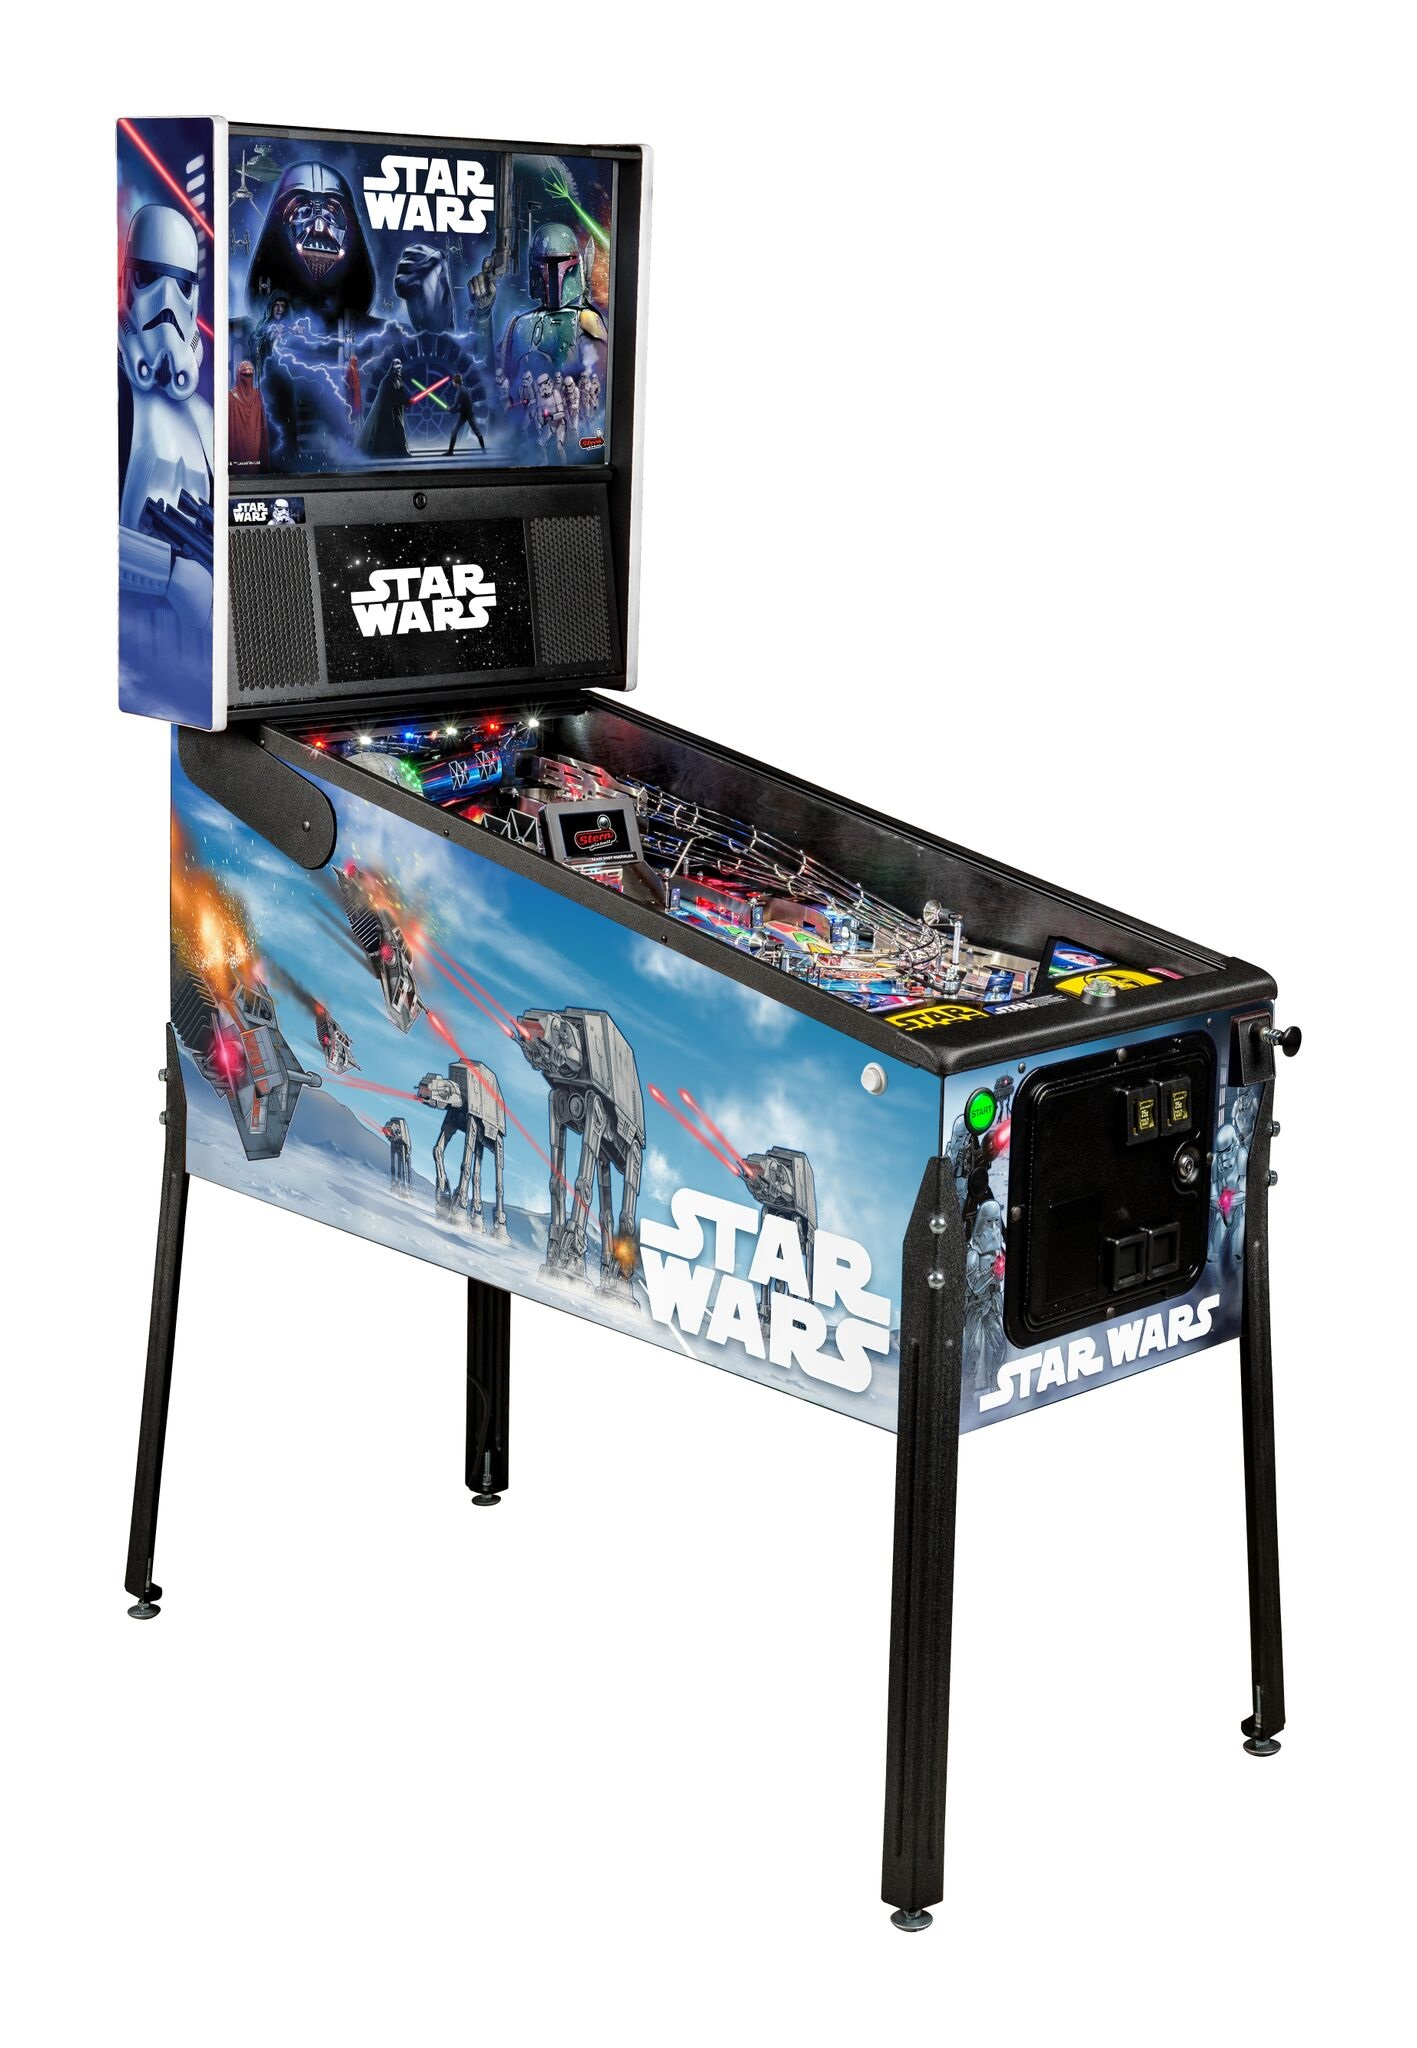 Stern Star Wars Premium Pinball Machine Free Shipping